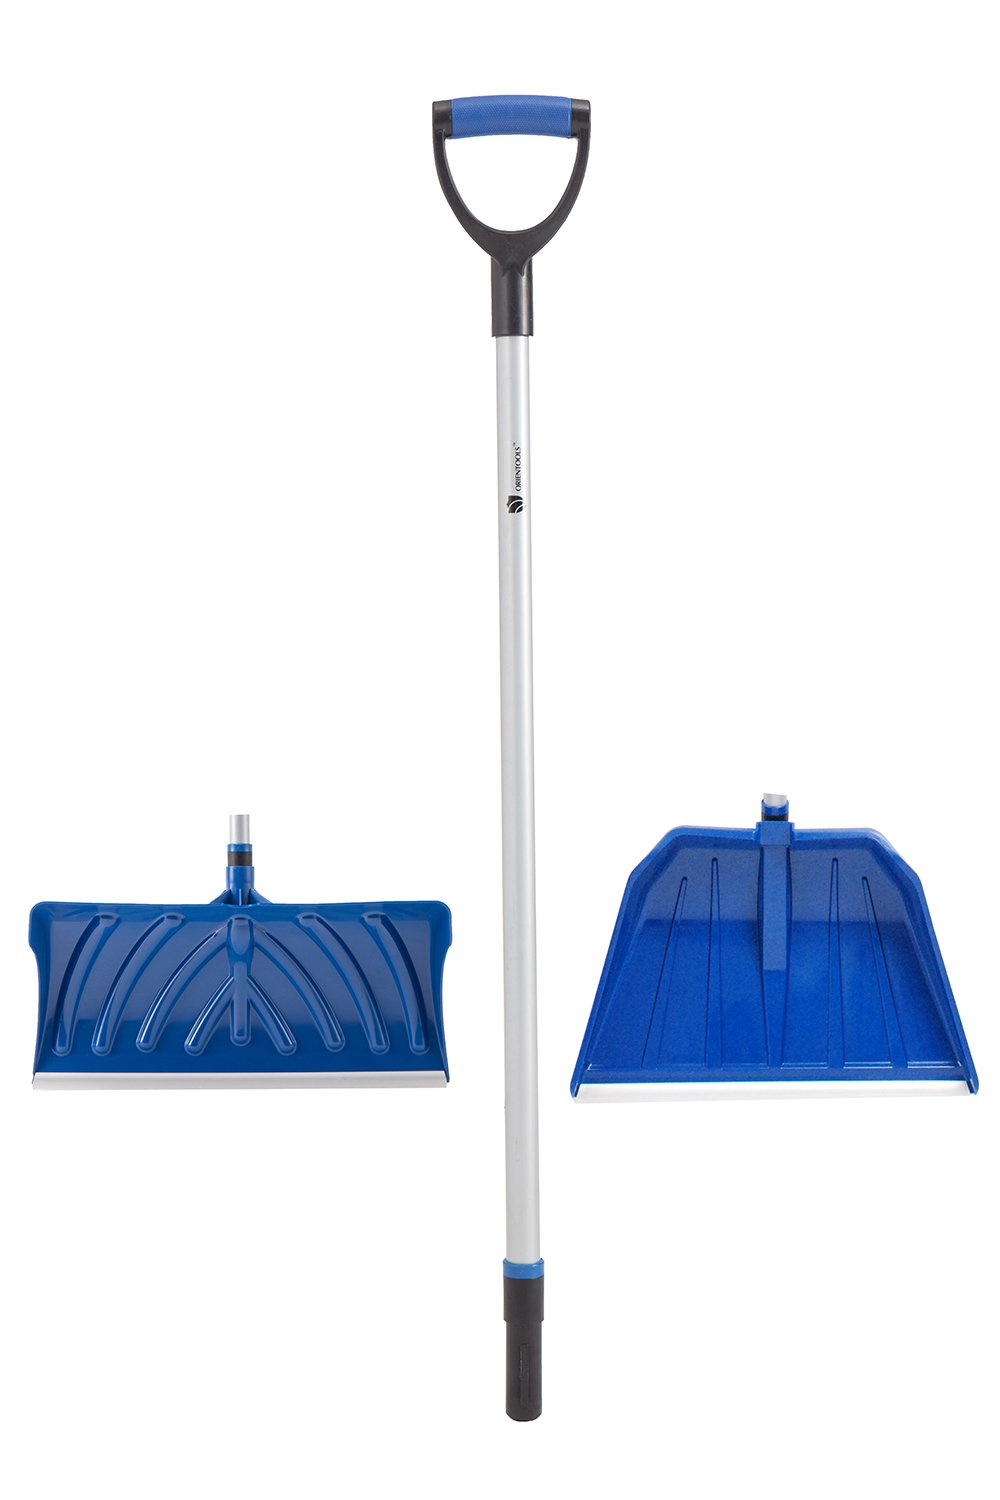 ORIENTOOLS Heavy Duty Dismountable Snow/Garden Shovel Set with D-Grip Handle, Perfect for Shoveling or Pushing Snow, Soils and Grains (19'' Shovel and 22'' Pusher Blades)